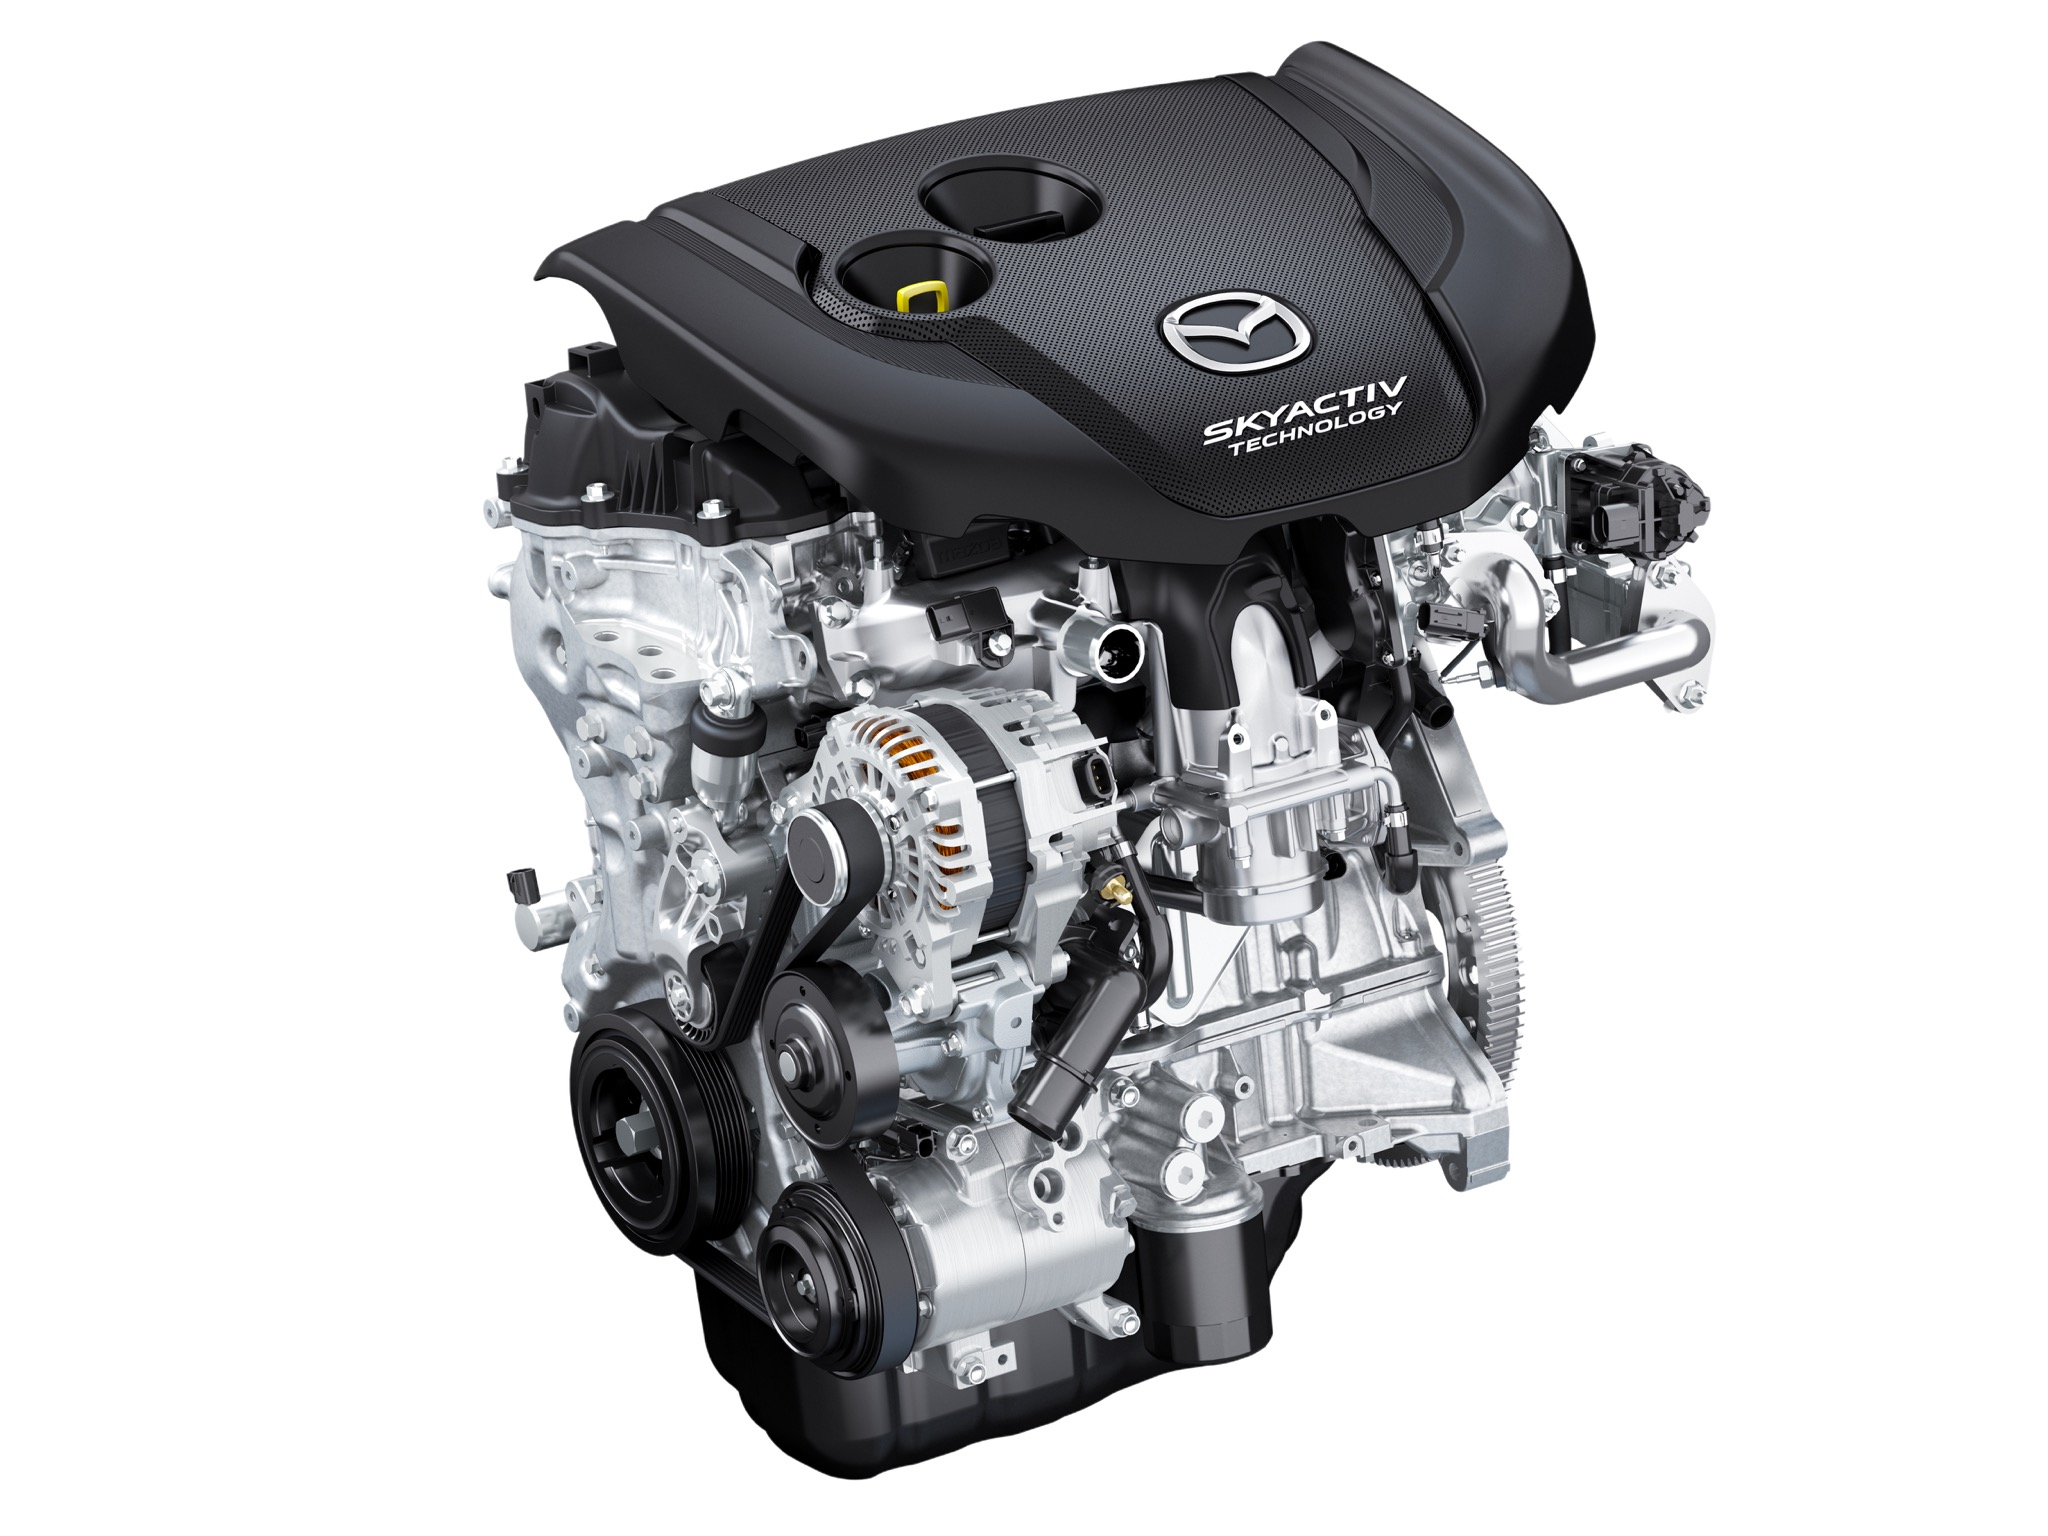 This is the 2.2L Skyactiv-D Diesel engine